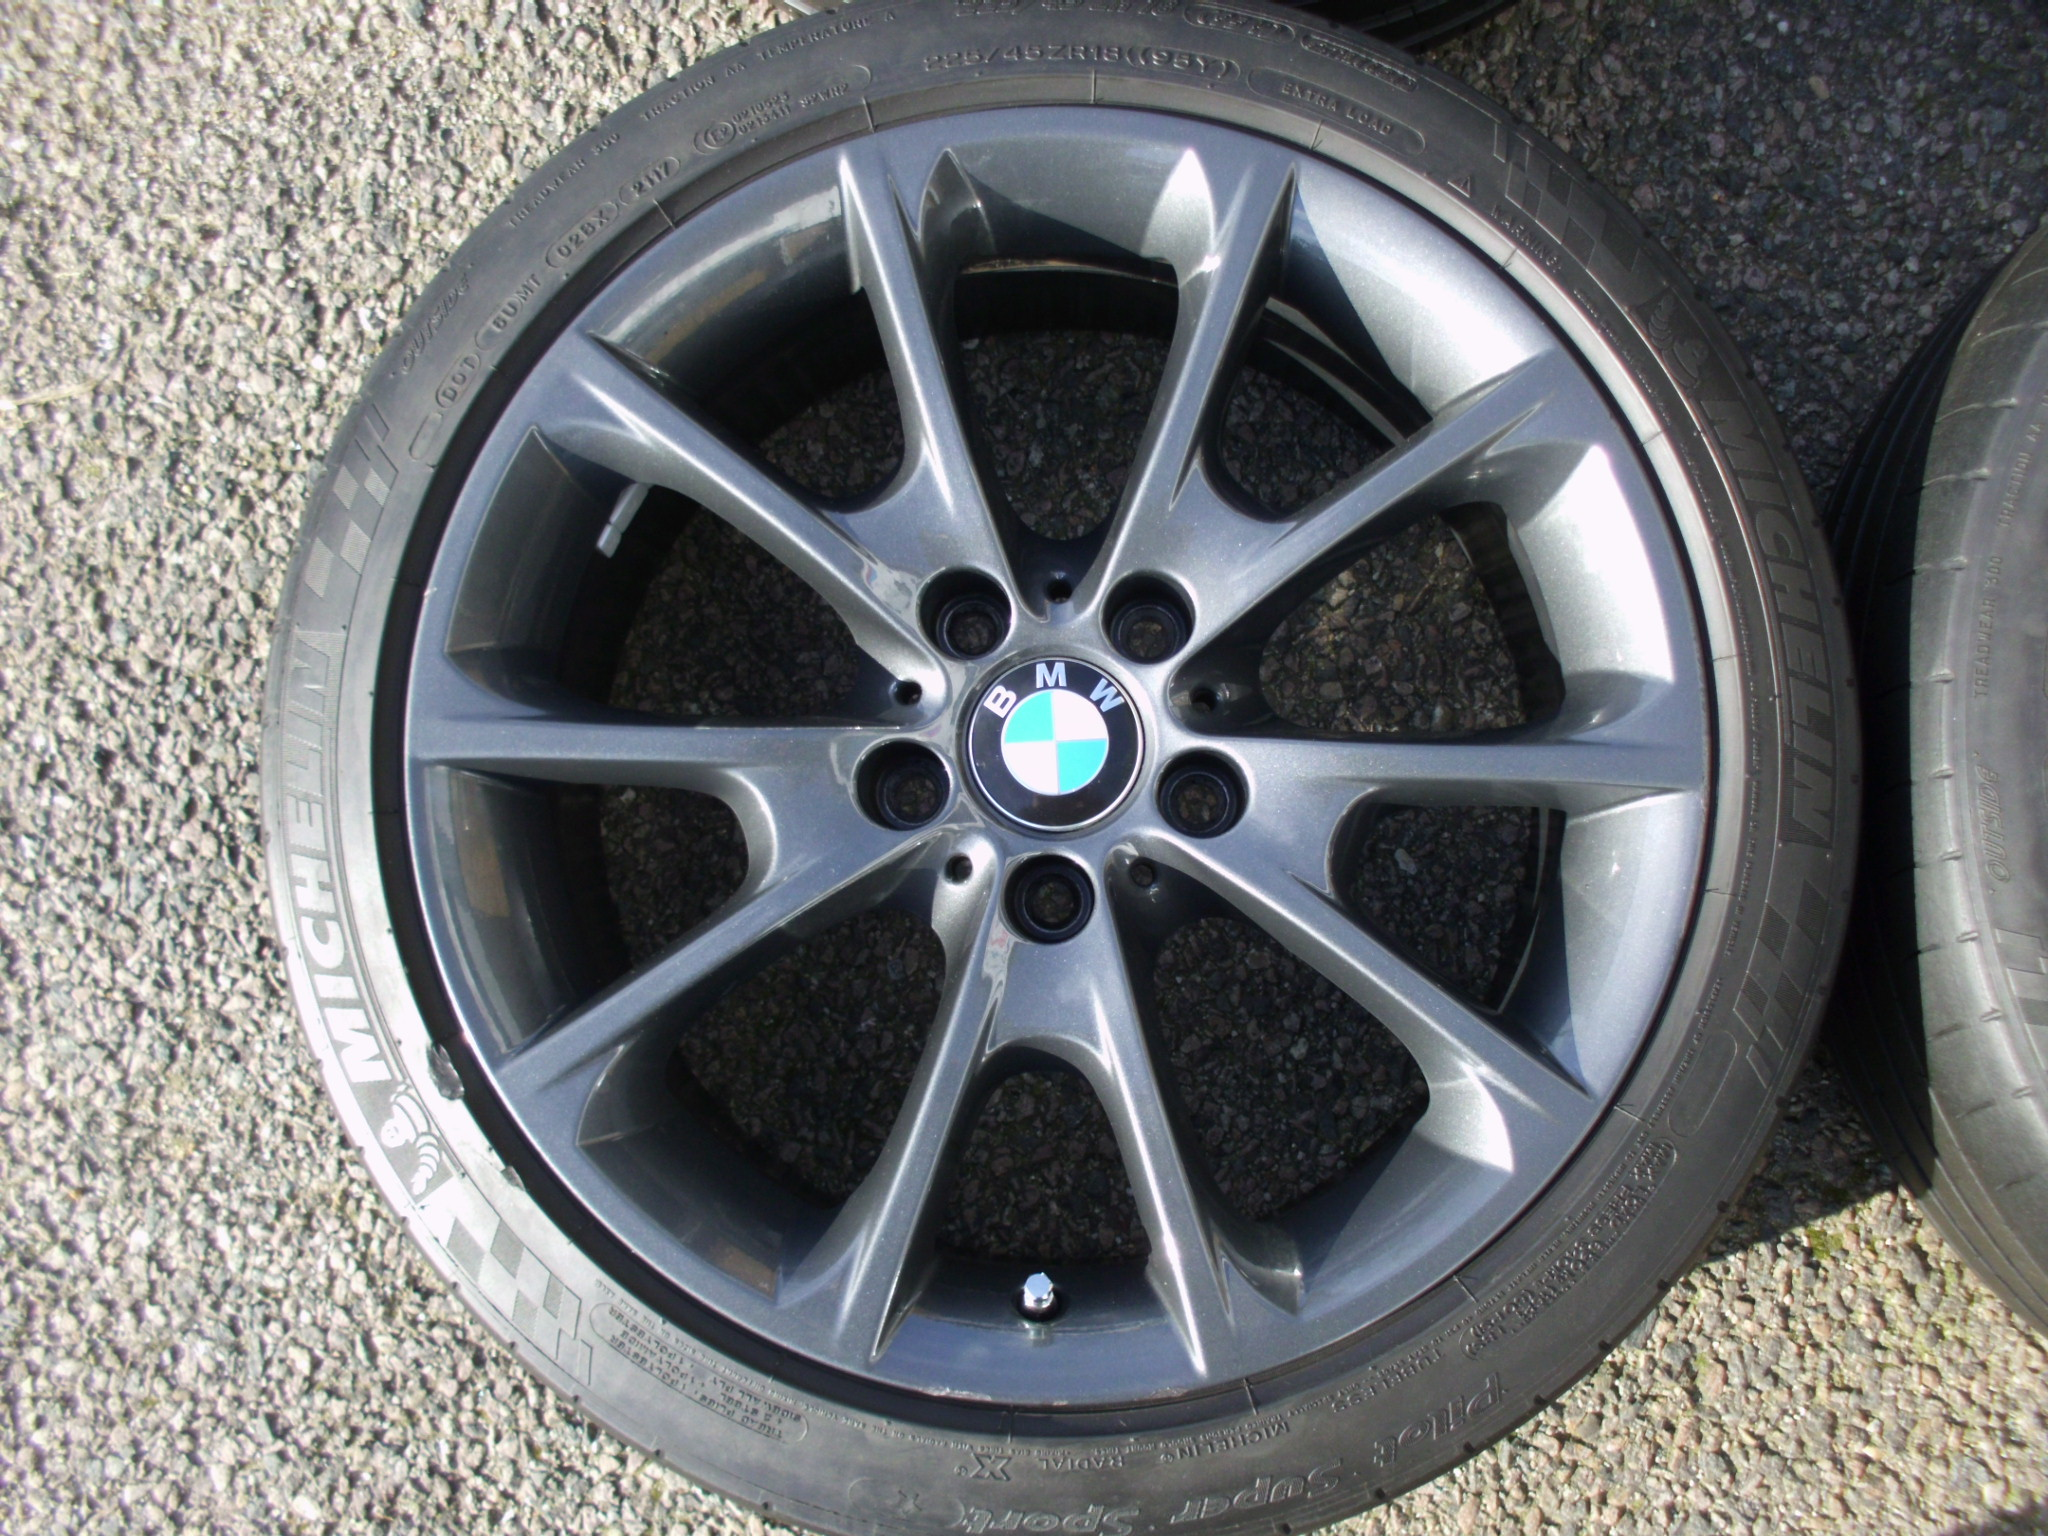 "USED 18"" GENUINE BMW STYLE 398 SPORT ALLOY WHEELS, ORBIT GREY, WIDER REARS,GOOD CONDITION, INC GOOD MICHELIN TYRES"